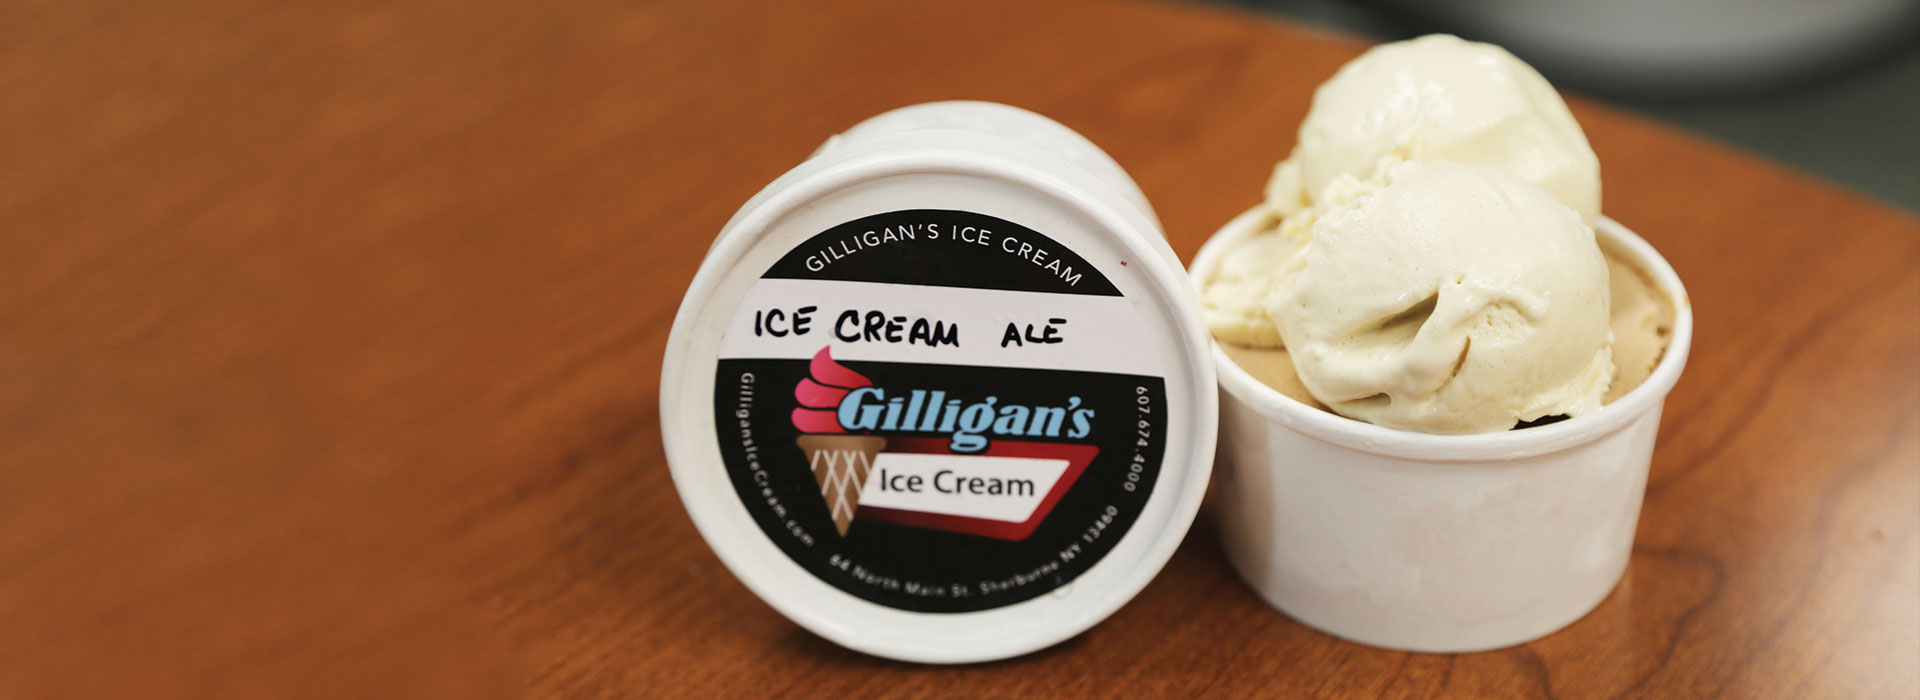 Gilligan's Ice Cream Ale